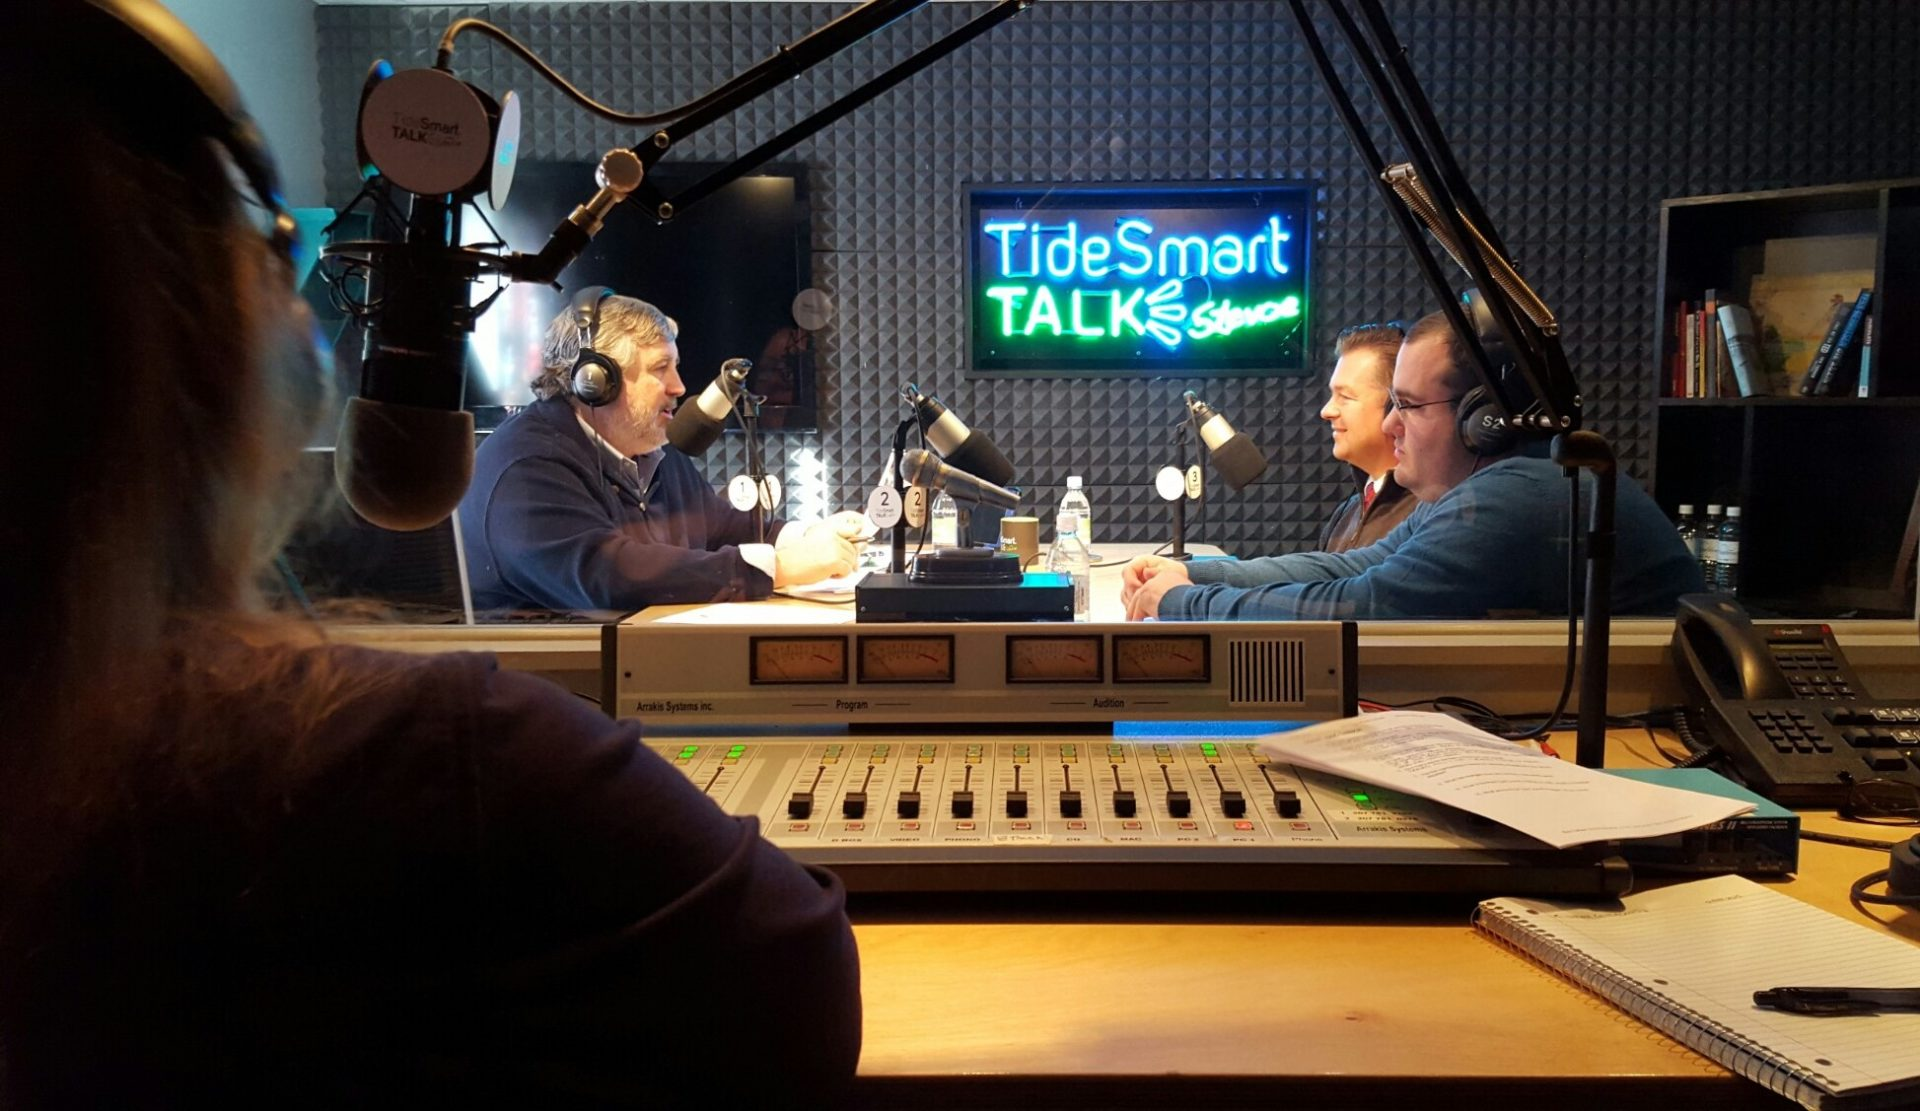 Host of TideSmart Talk with Stevoe, Steve Woods, welcomed Scout Executive, Eric Tarbox and Communications Director, Tucker Adams (at right).